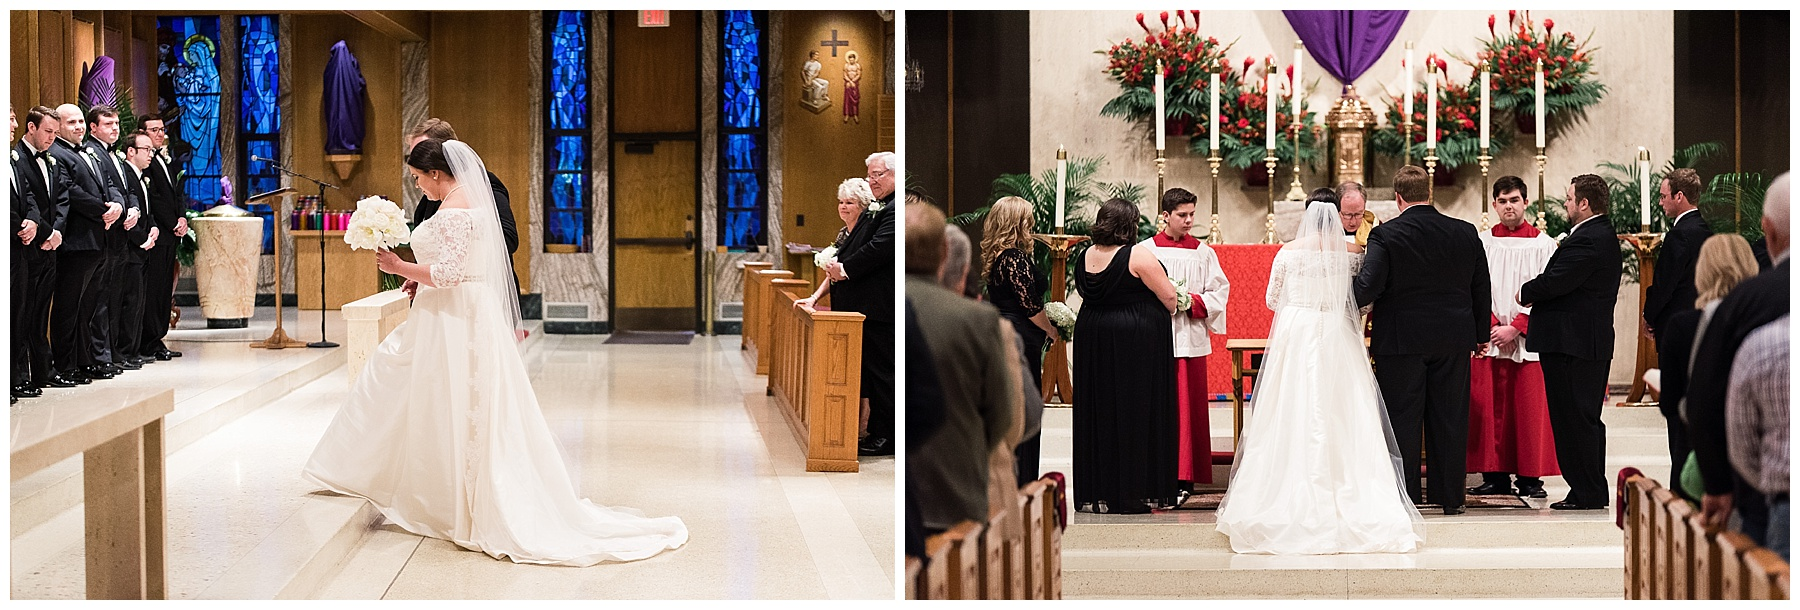 lydia royce, christ the king catholic church, CHK central boathouse, the bridal boutique, bridal maison by moe, men's wearhouse, borrowed charm events rentals and styling, rococo, oklahoma wedding, central oklahoma events